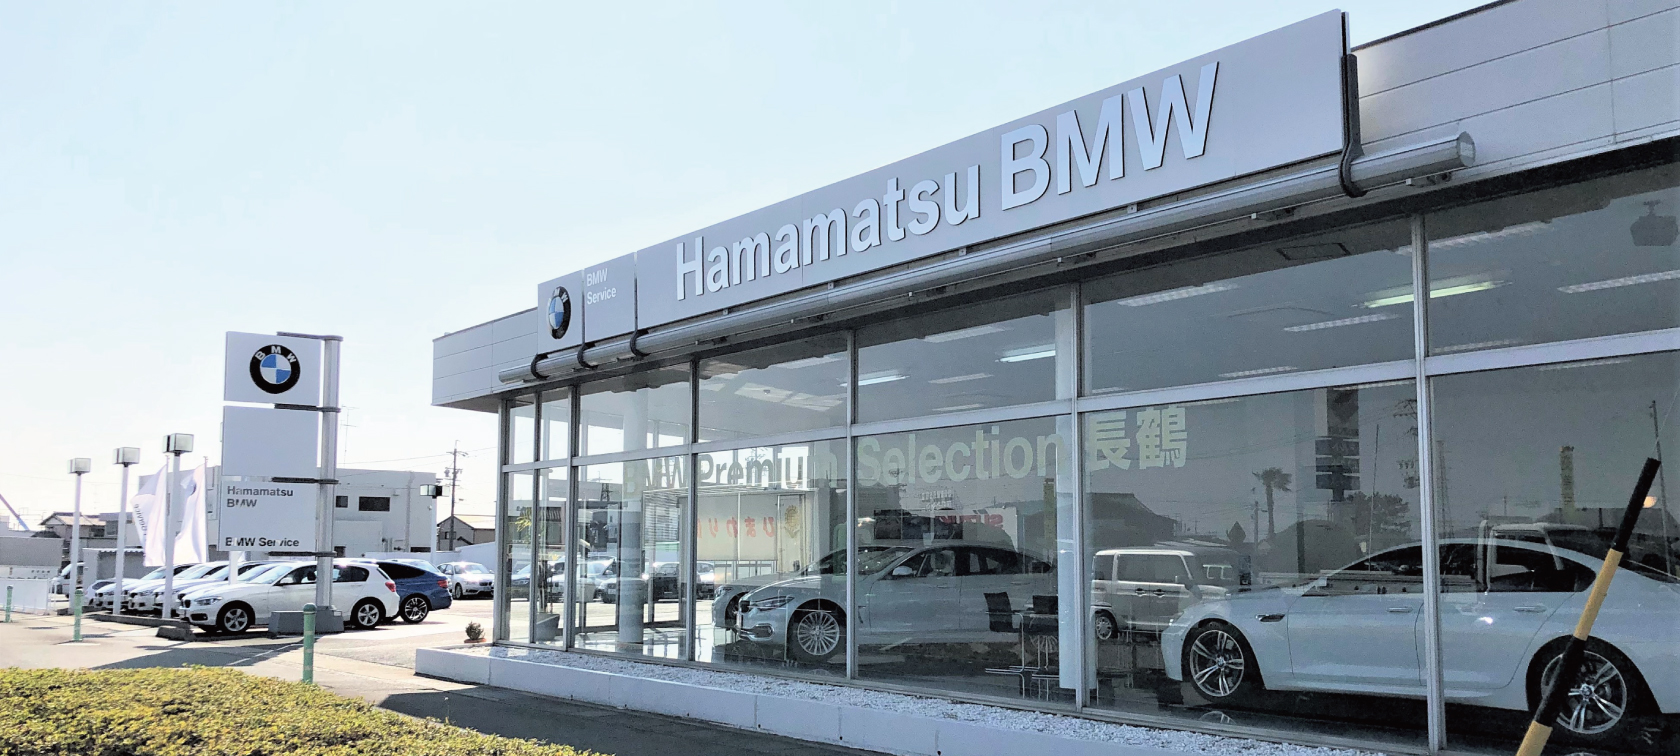 BMW Premium Selection 長鶴